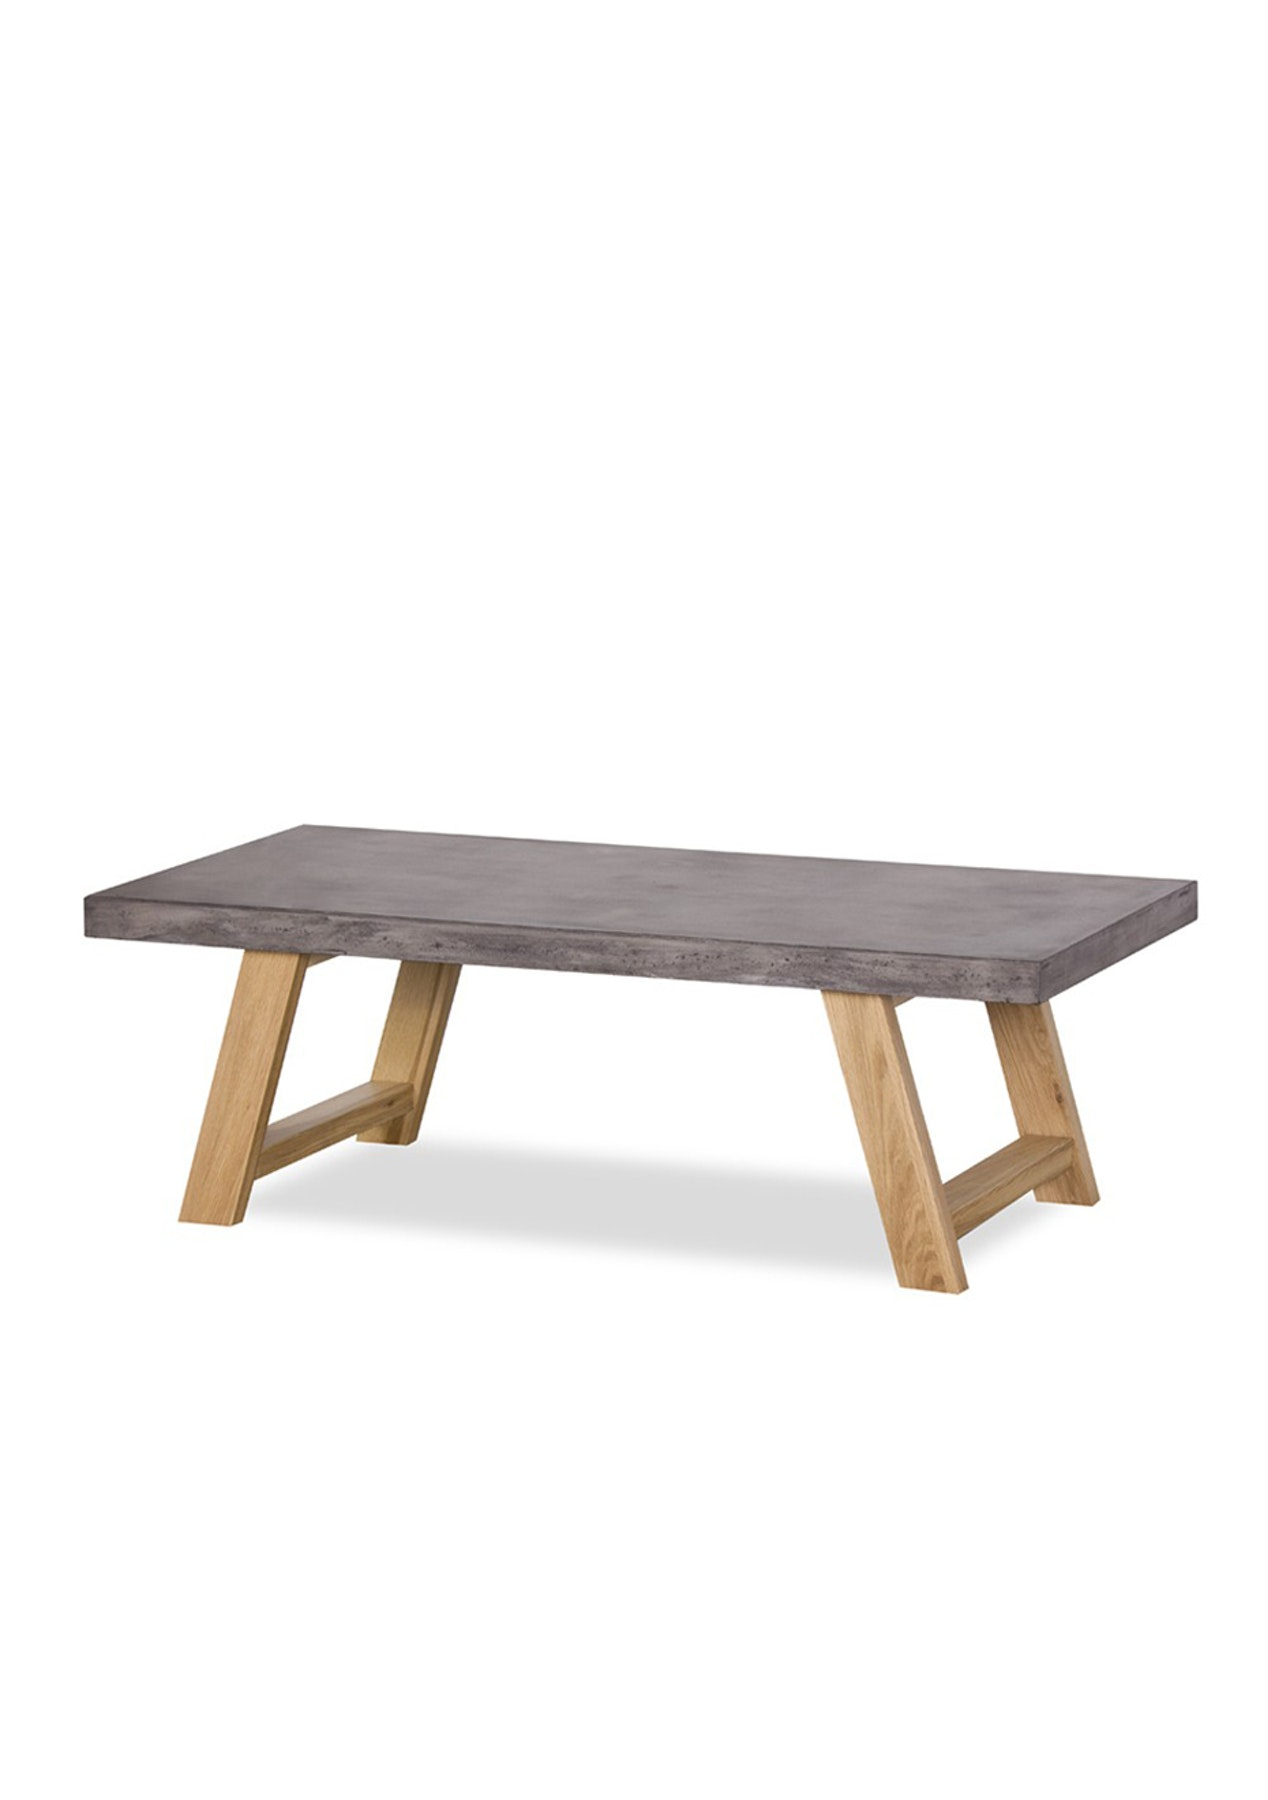 Concrete Coffee Table - Concrete and Solid Oak - Big Furniture Clearance -  Onceit